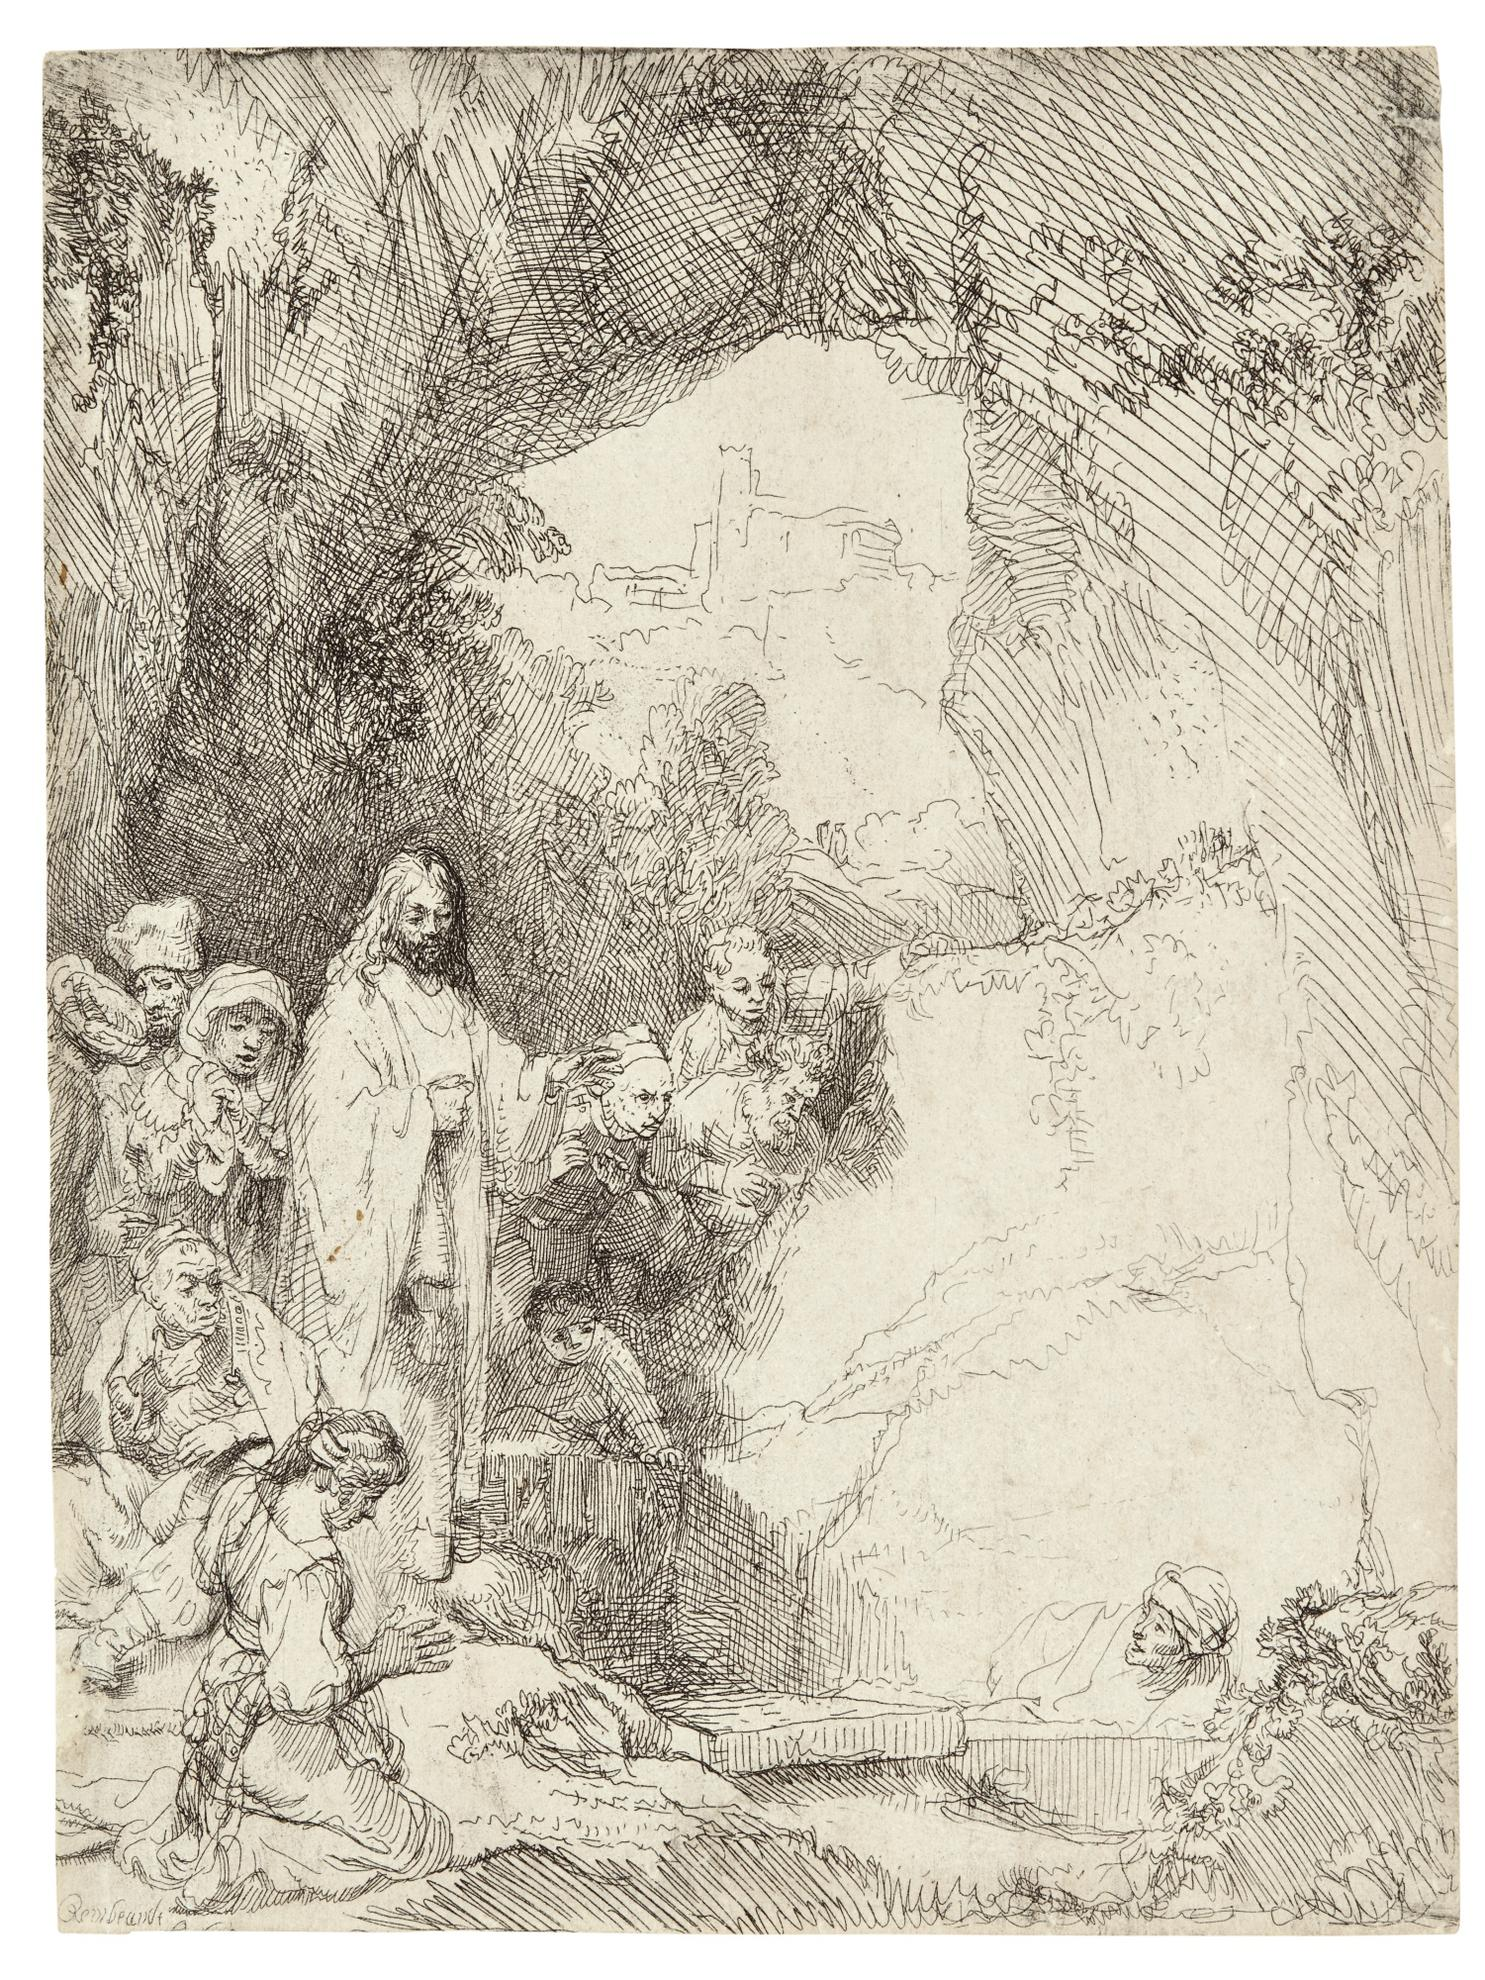 Rembrandt van Rijn-The Raising Of Lazarus: Small Plate (B., Holl. 72; New Holl. 206; H. 198)-1642